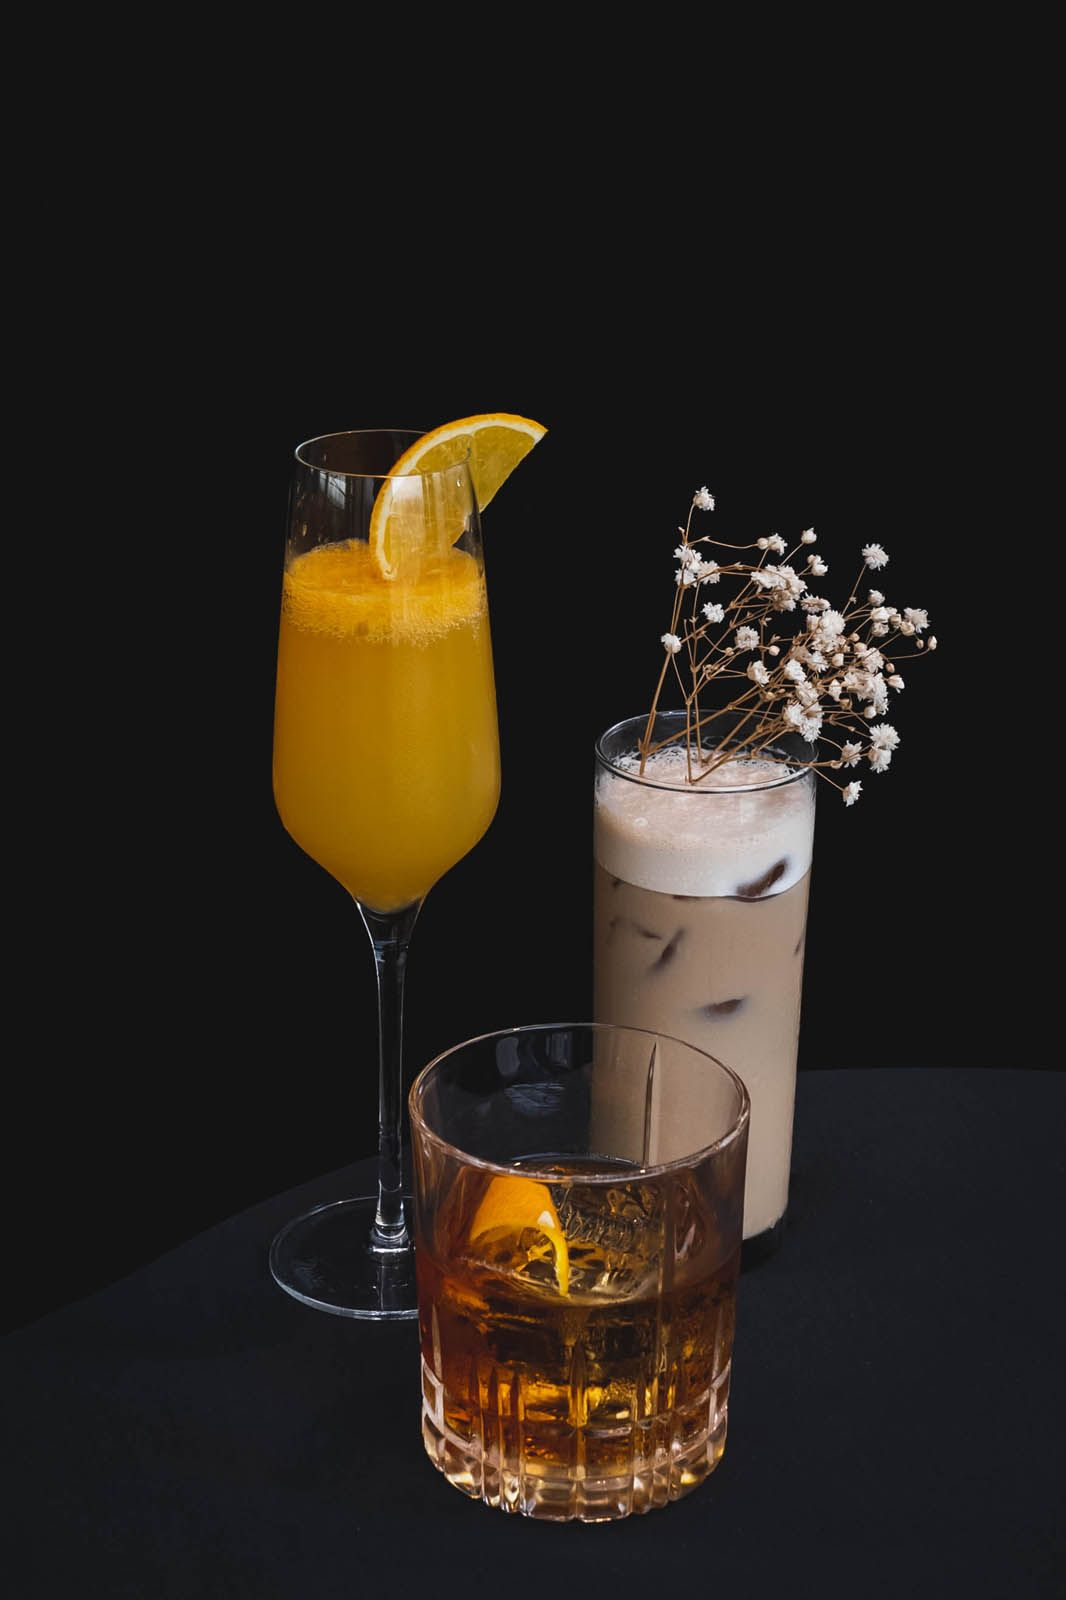 Atico Lounge's French-inspired cocktails